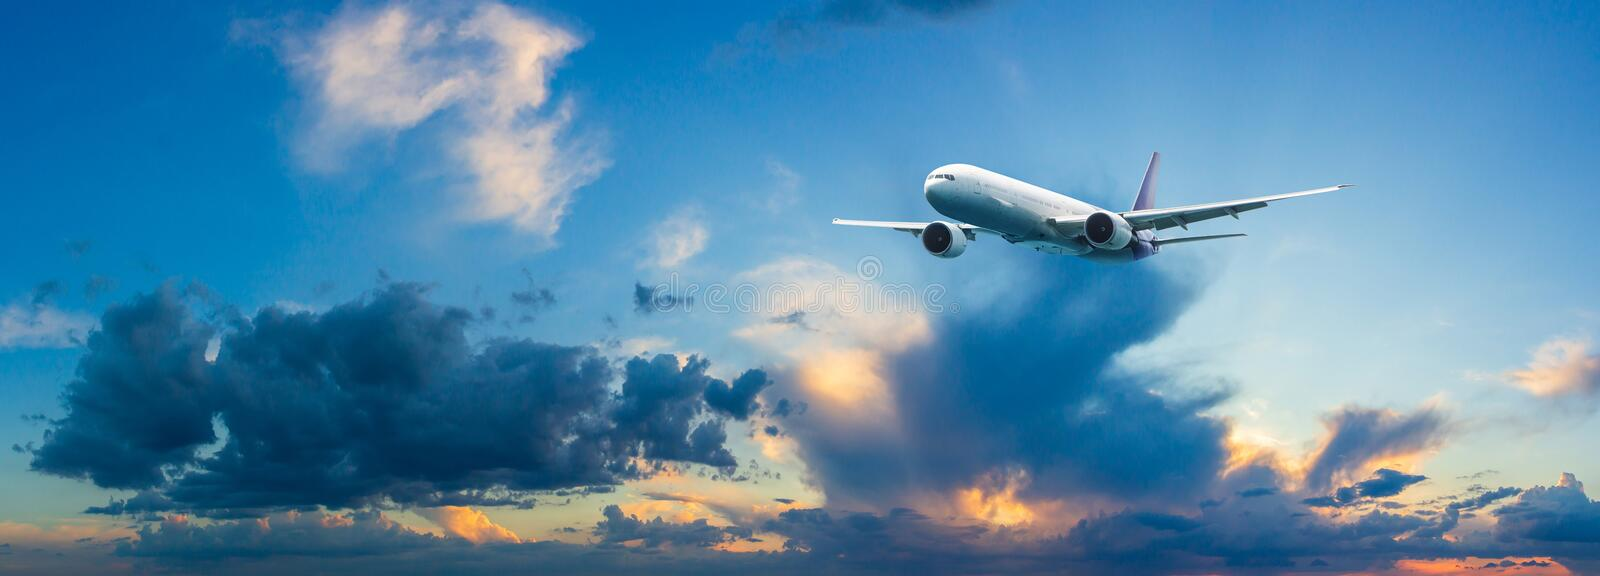 Passenger airplane flying above night clouds and amazing sky at the sunset. stock photo